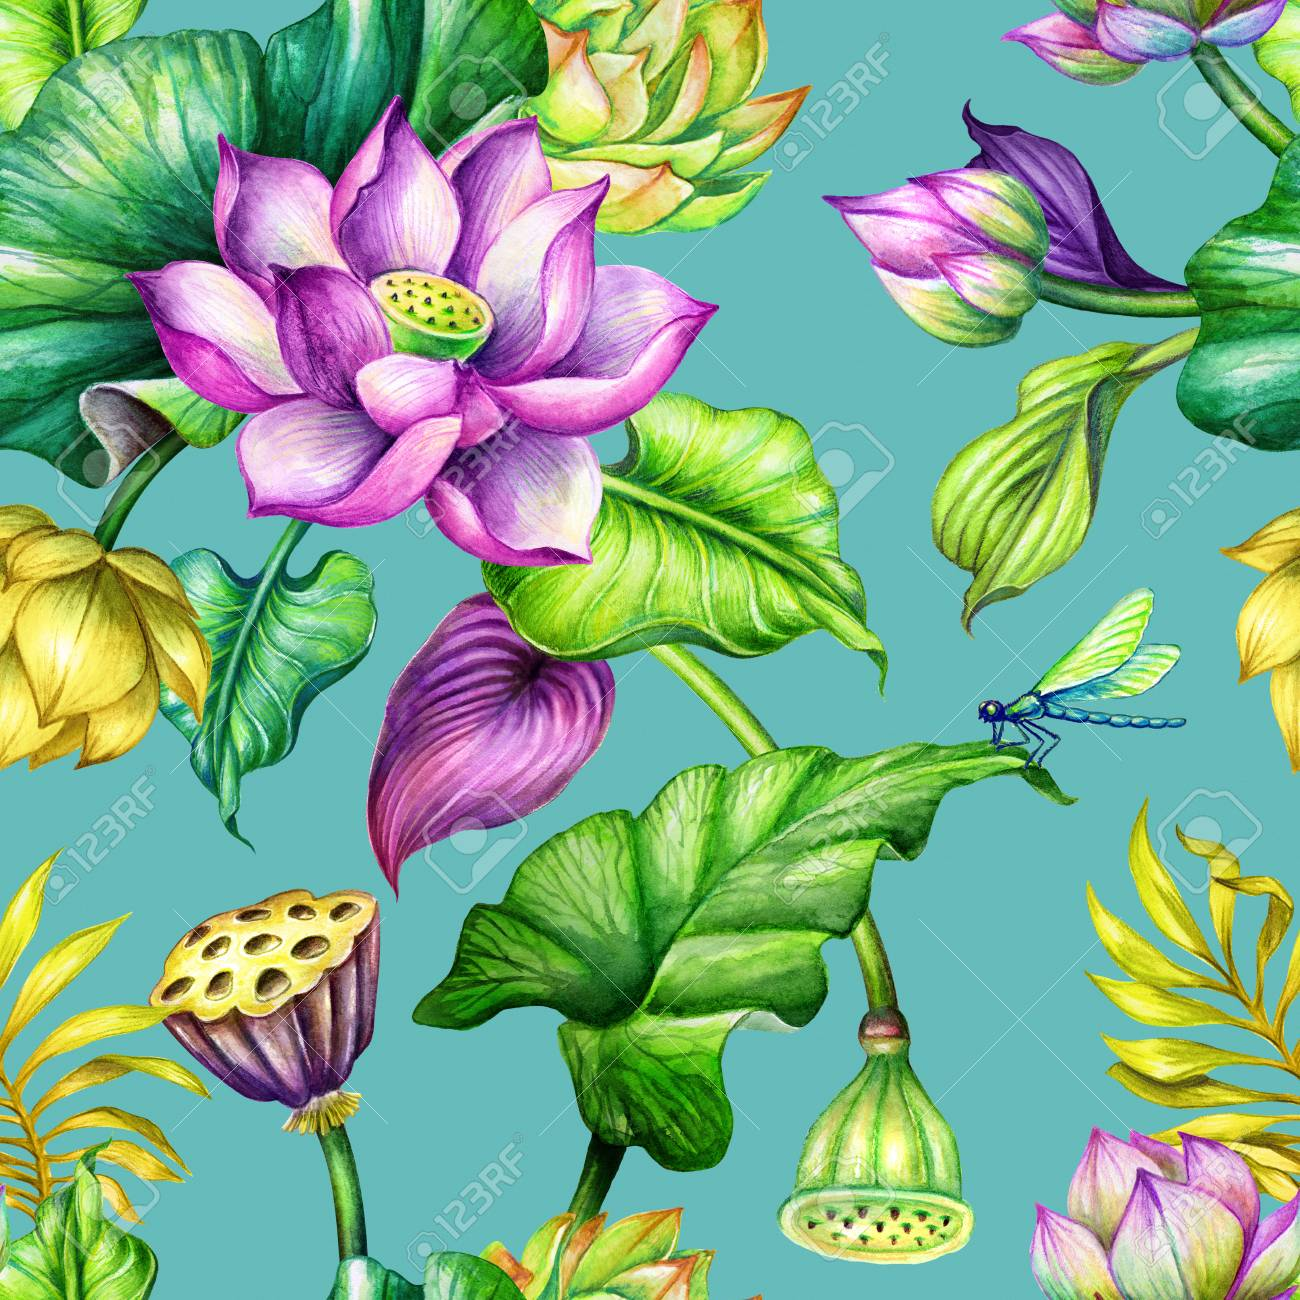 Seamless Botanical Pattern Watercolor Repeating Floral Background